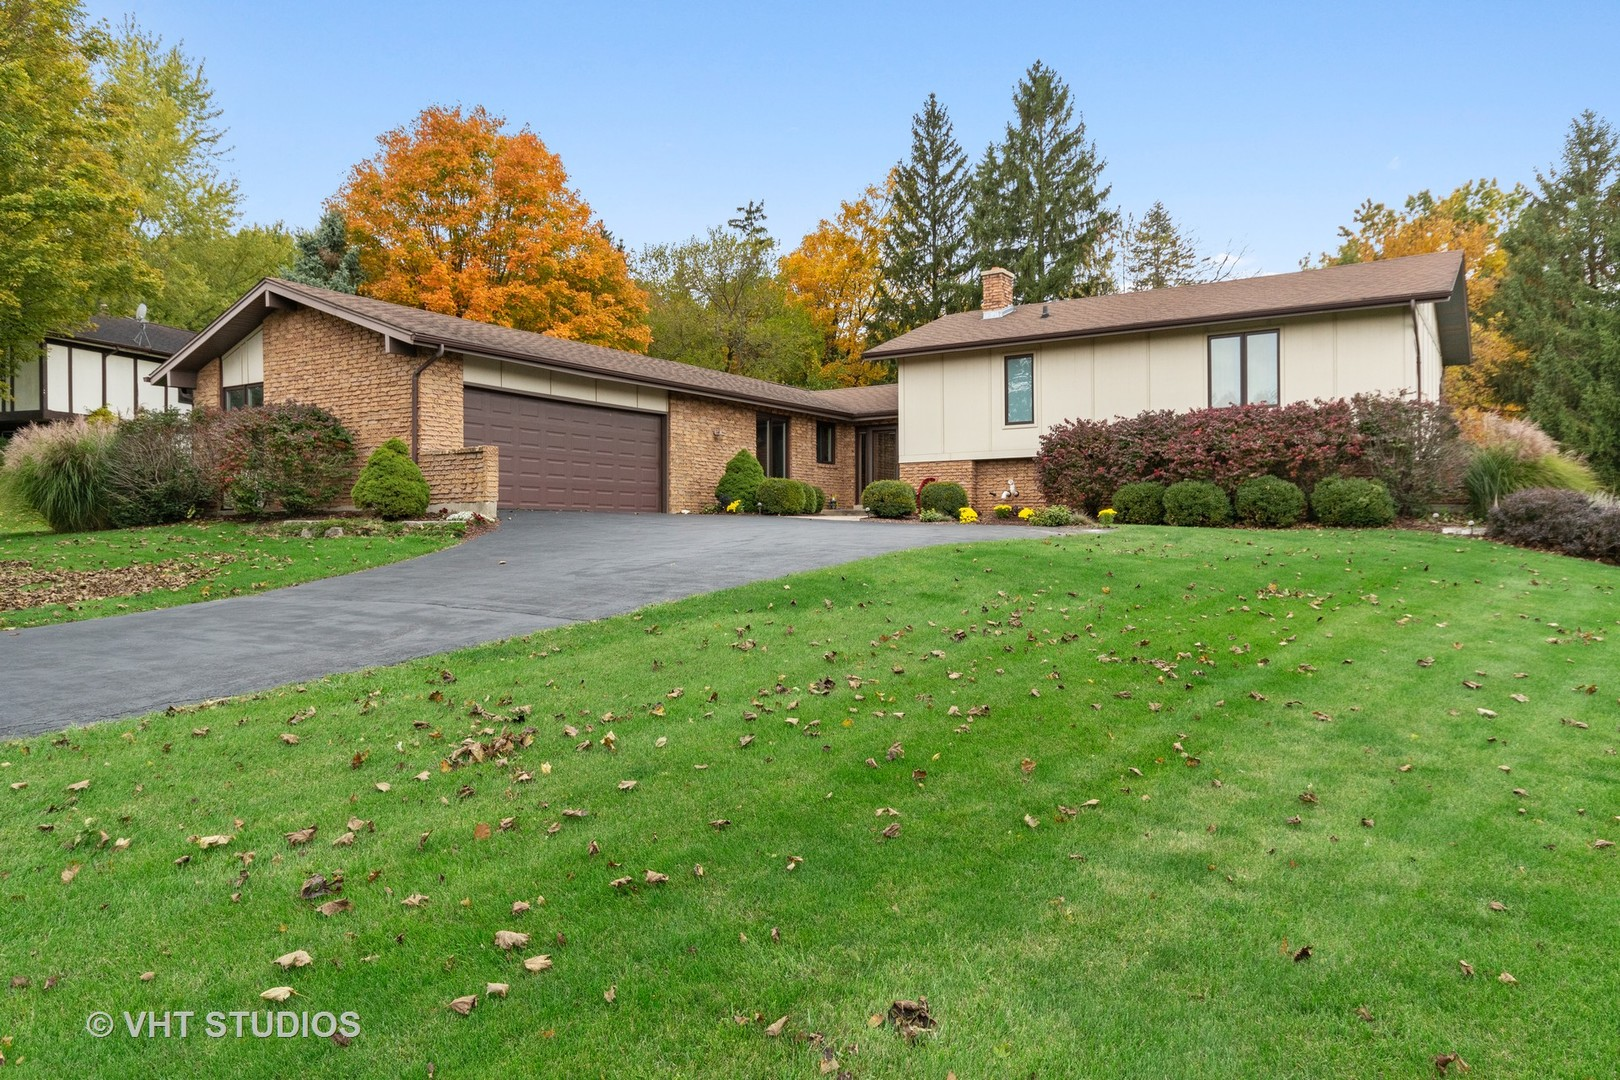 Photo for 42W436 Meadowlark Court, St. Charles, IL 60175 (MLS # 10558371)